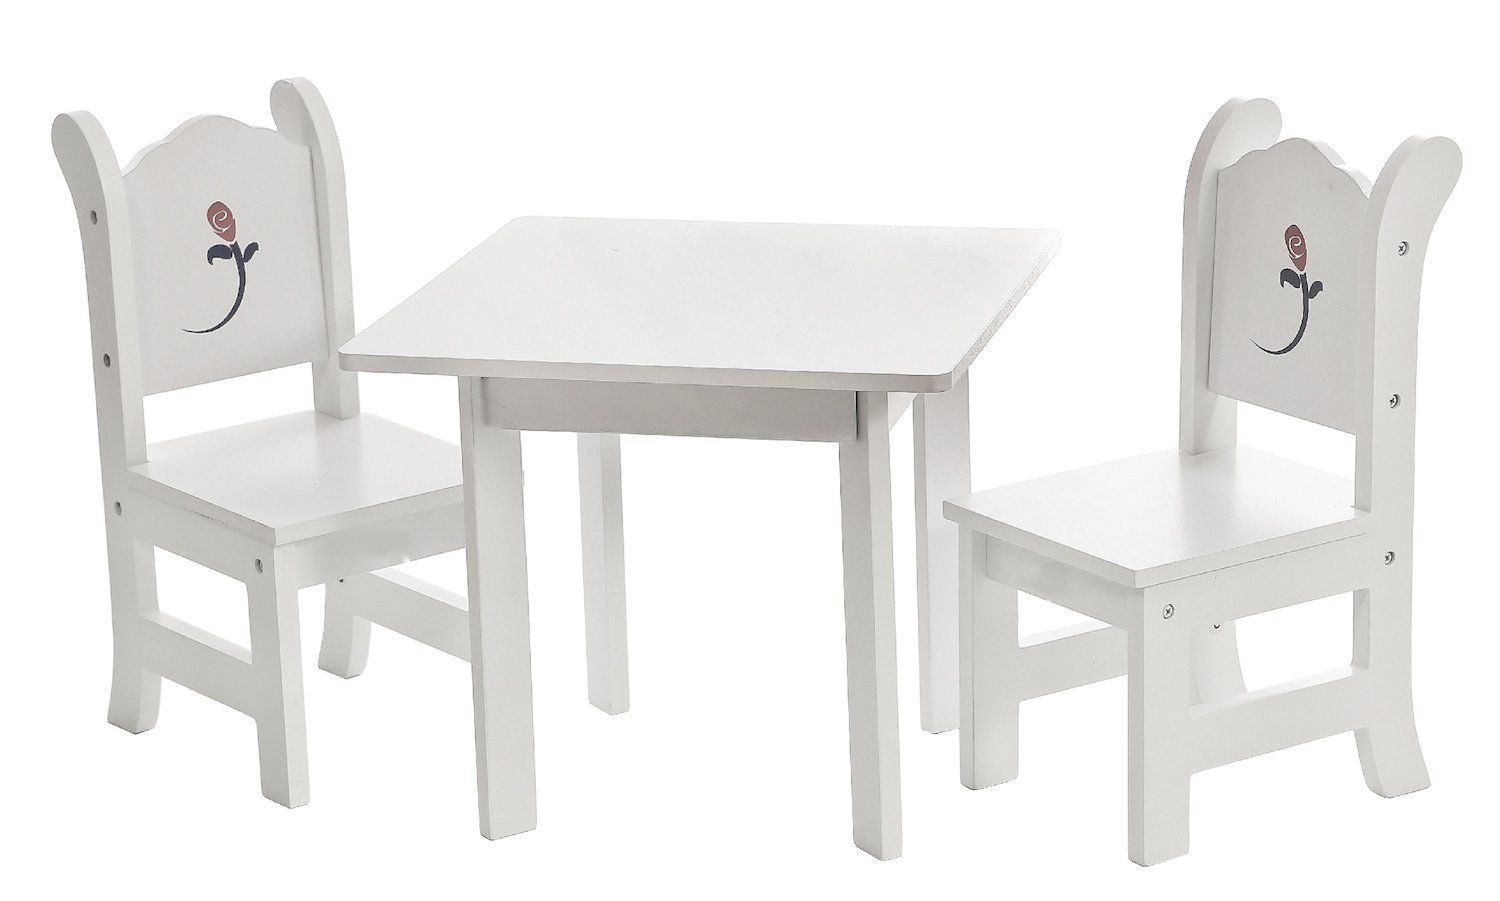 Astounding 18 Inch Doll Table And Chairs Set White Furniture With Machost Co Dining Chair Design Ideas Machostcouk